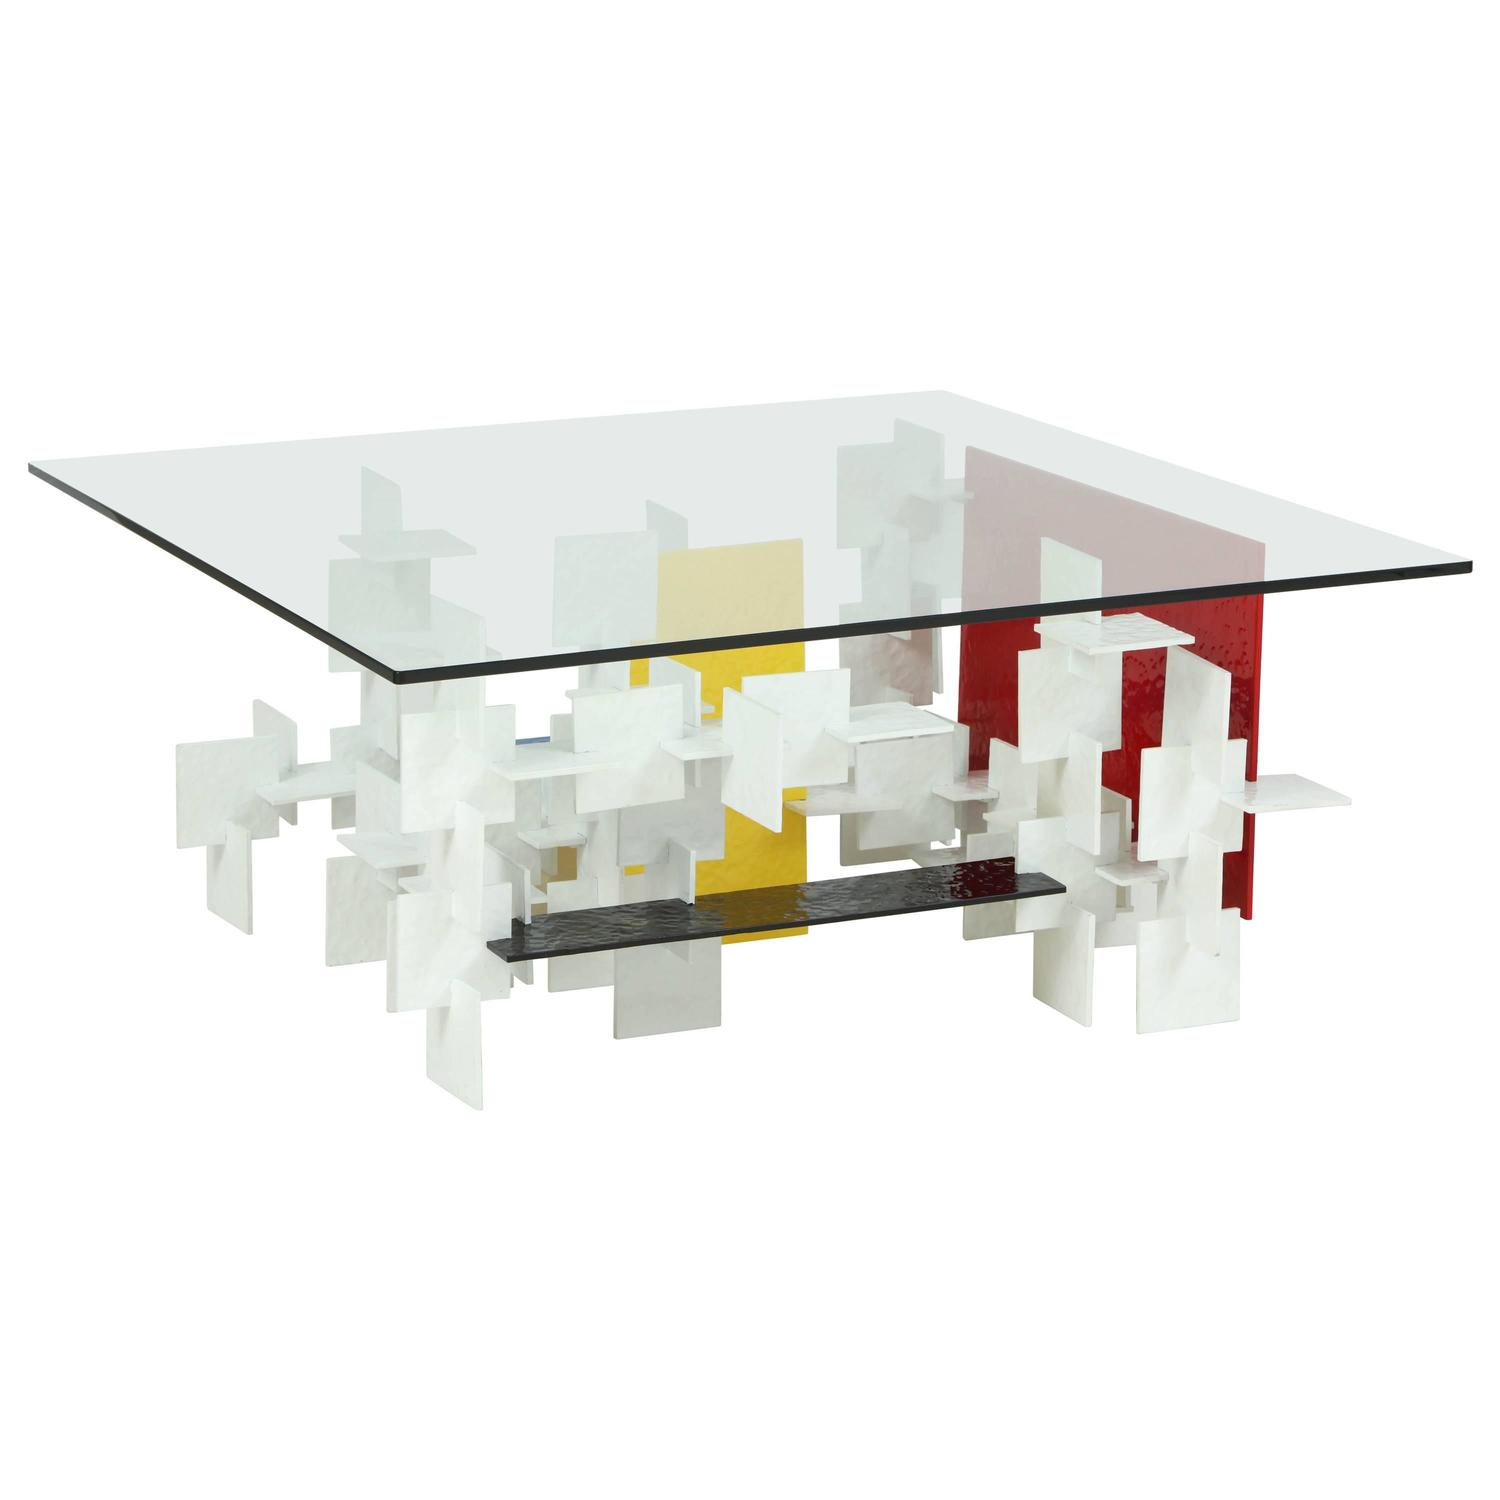 Fran Taubman Prototype Coffee Table Multi Colored Hammered